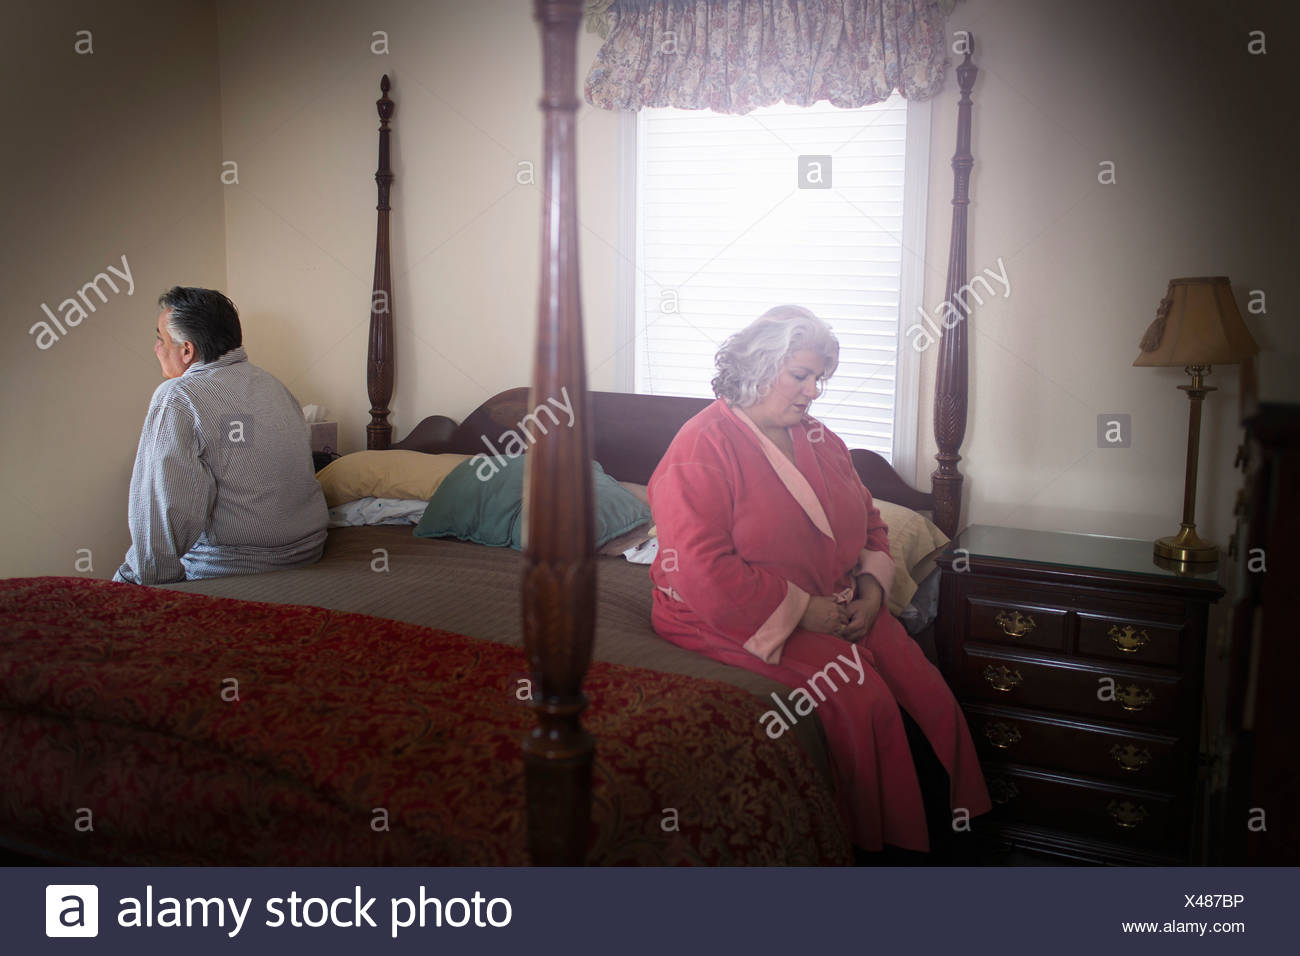 Mature couple sitting on opposite sides of bed - Stock Image